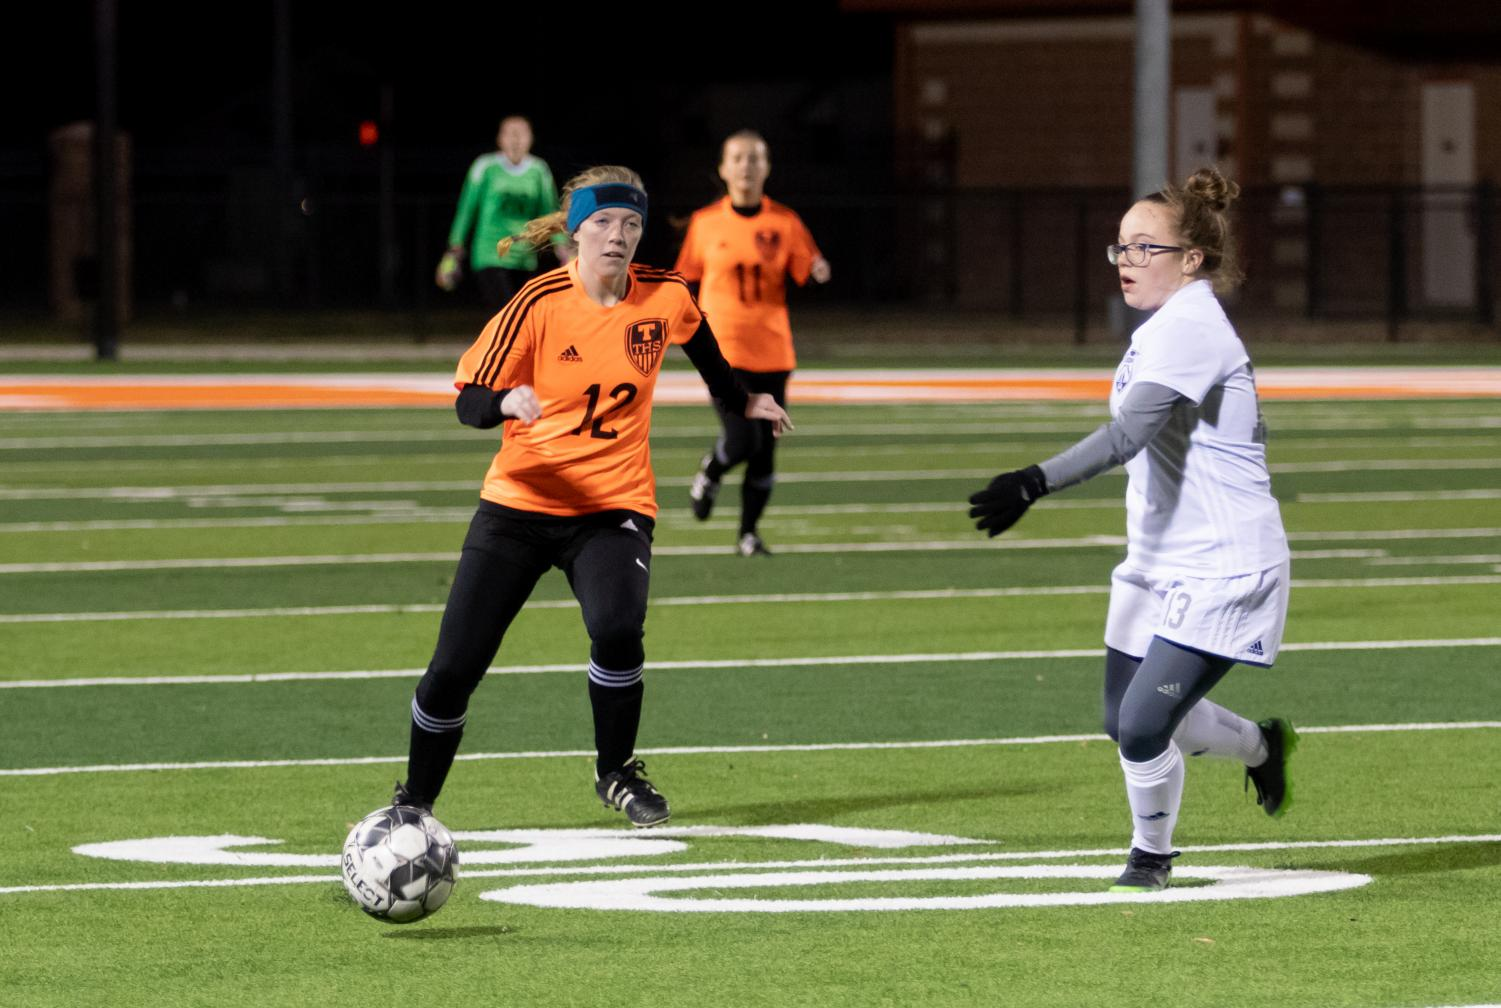 Sophomore Janie Rounds goes after the soccer ball. The girls soccer team played against the Greenville Lions.